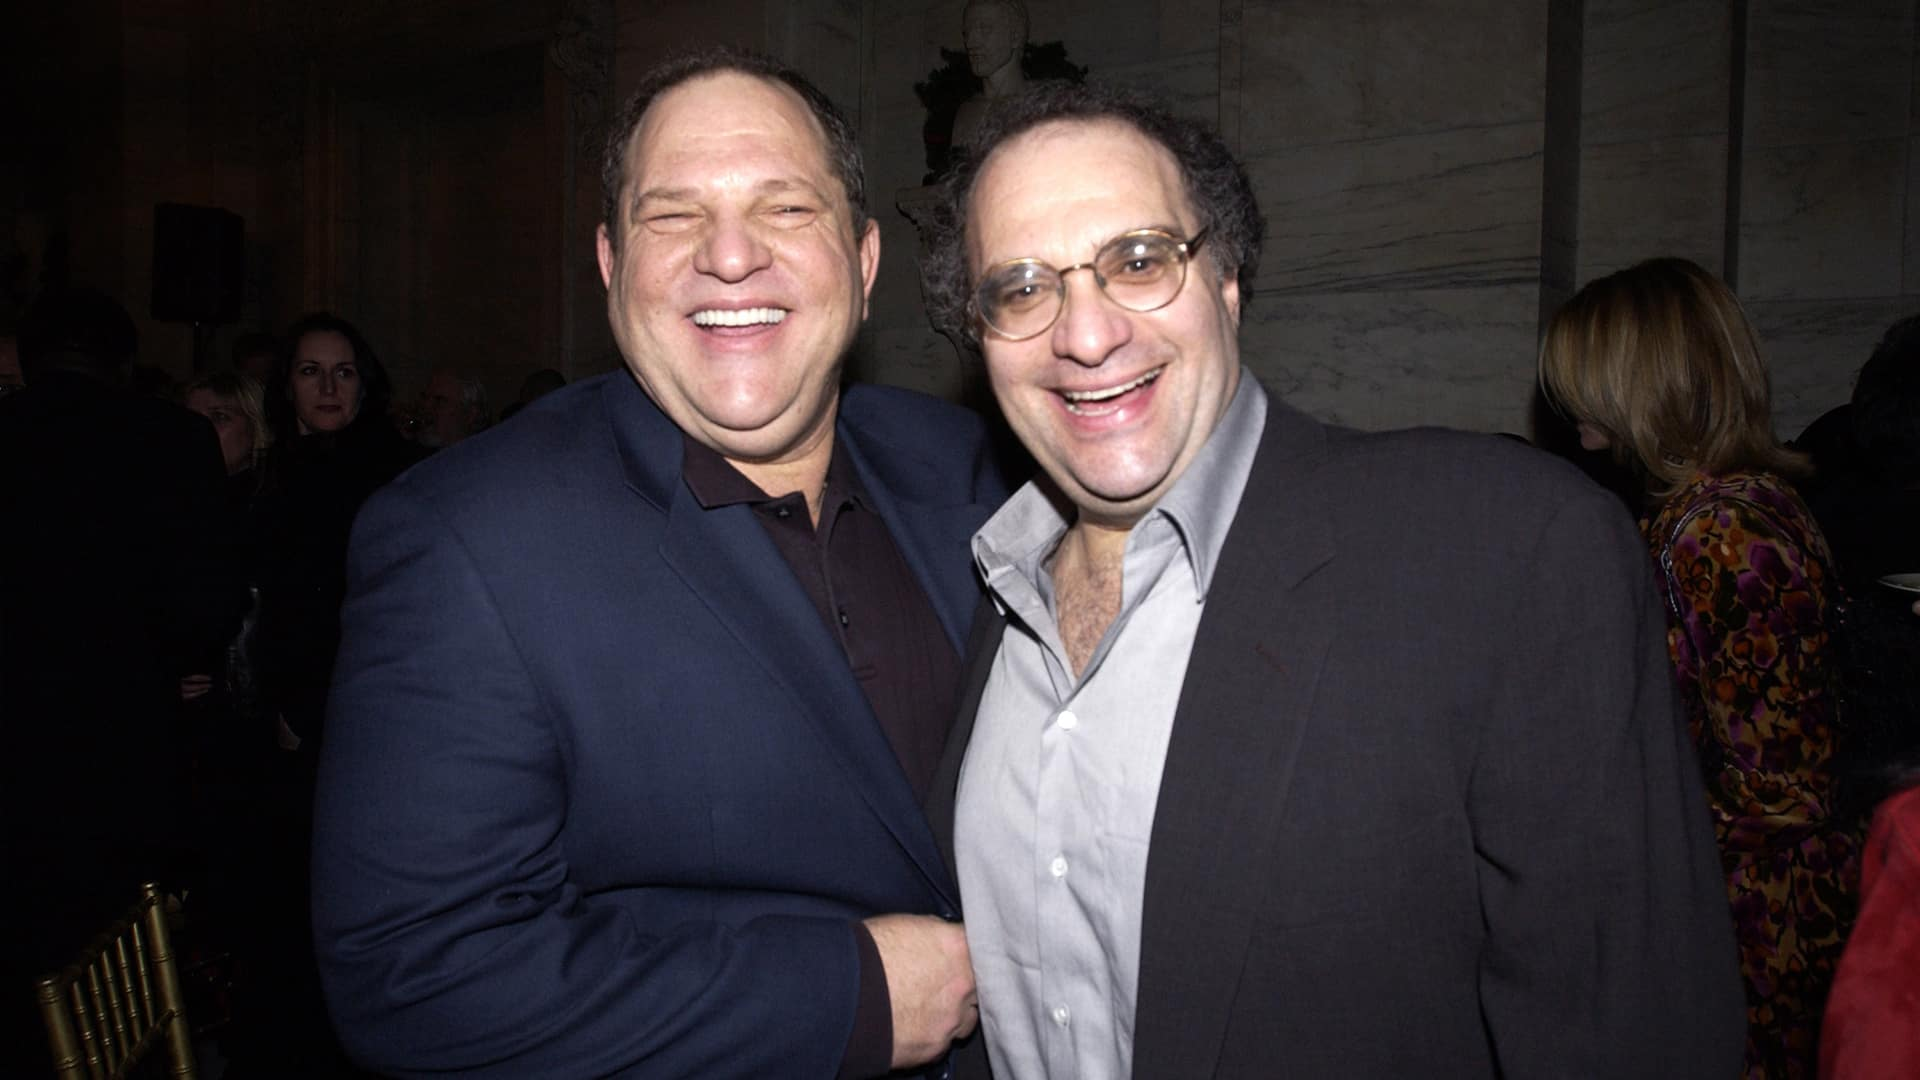 Los hermanos Weinstein, Harvey y Bob. (WireImage)